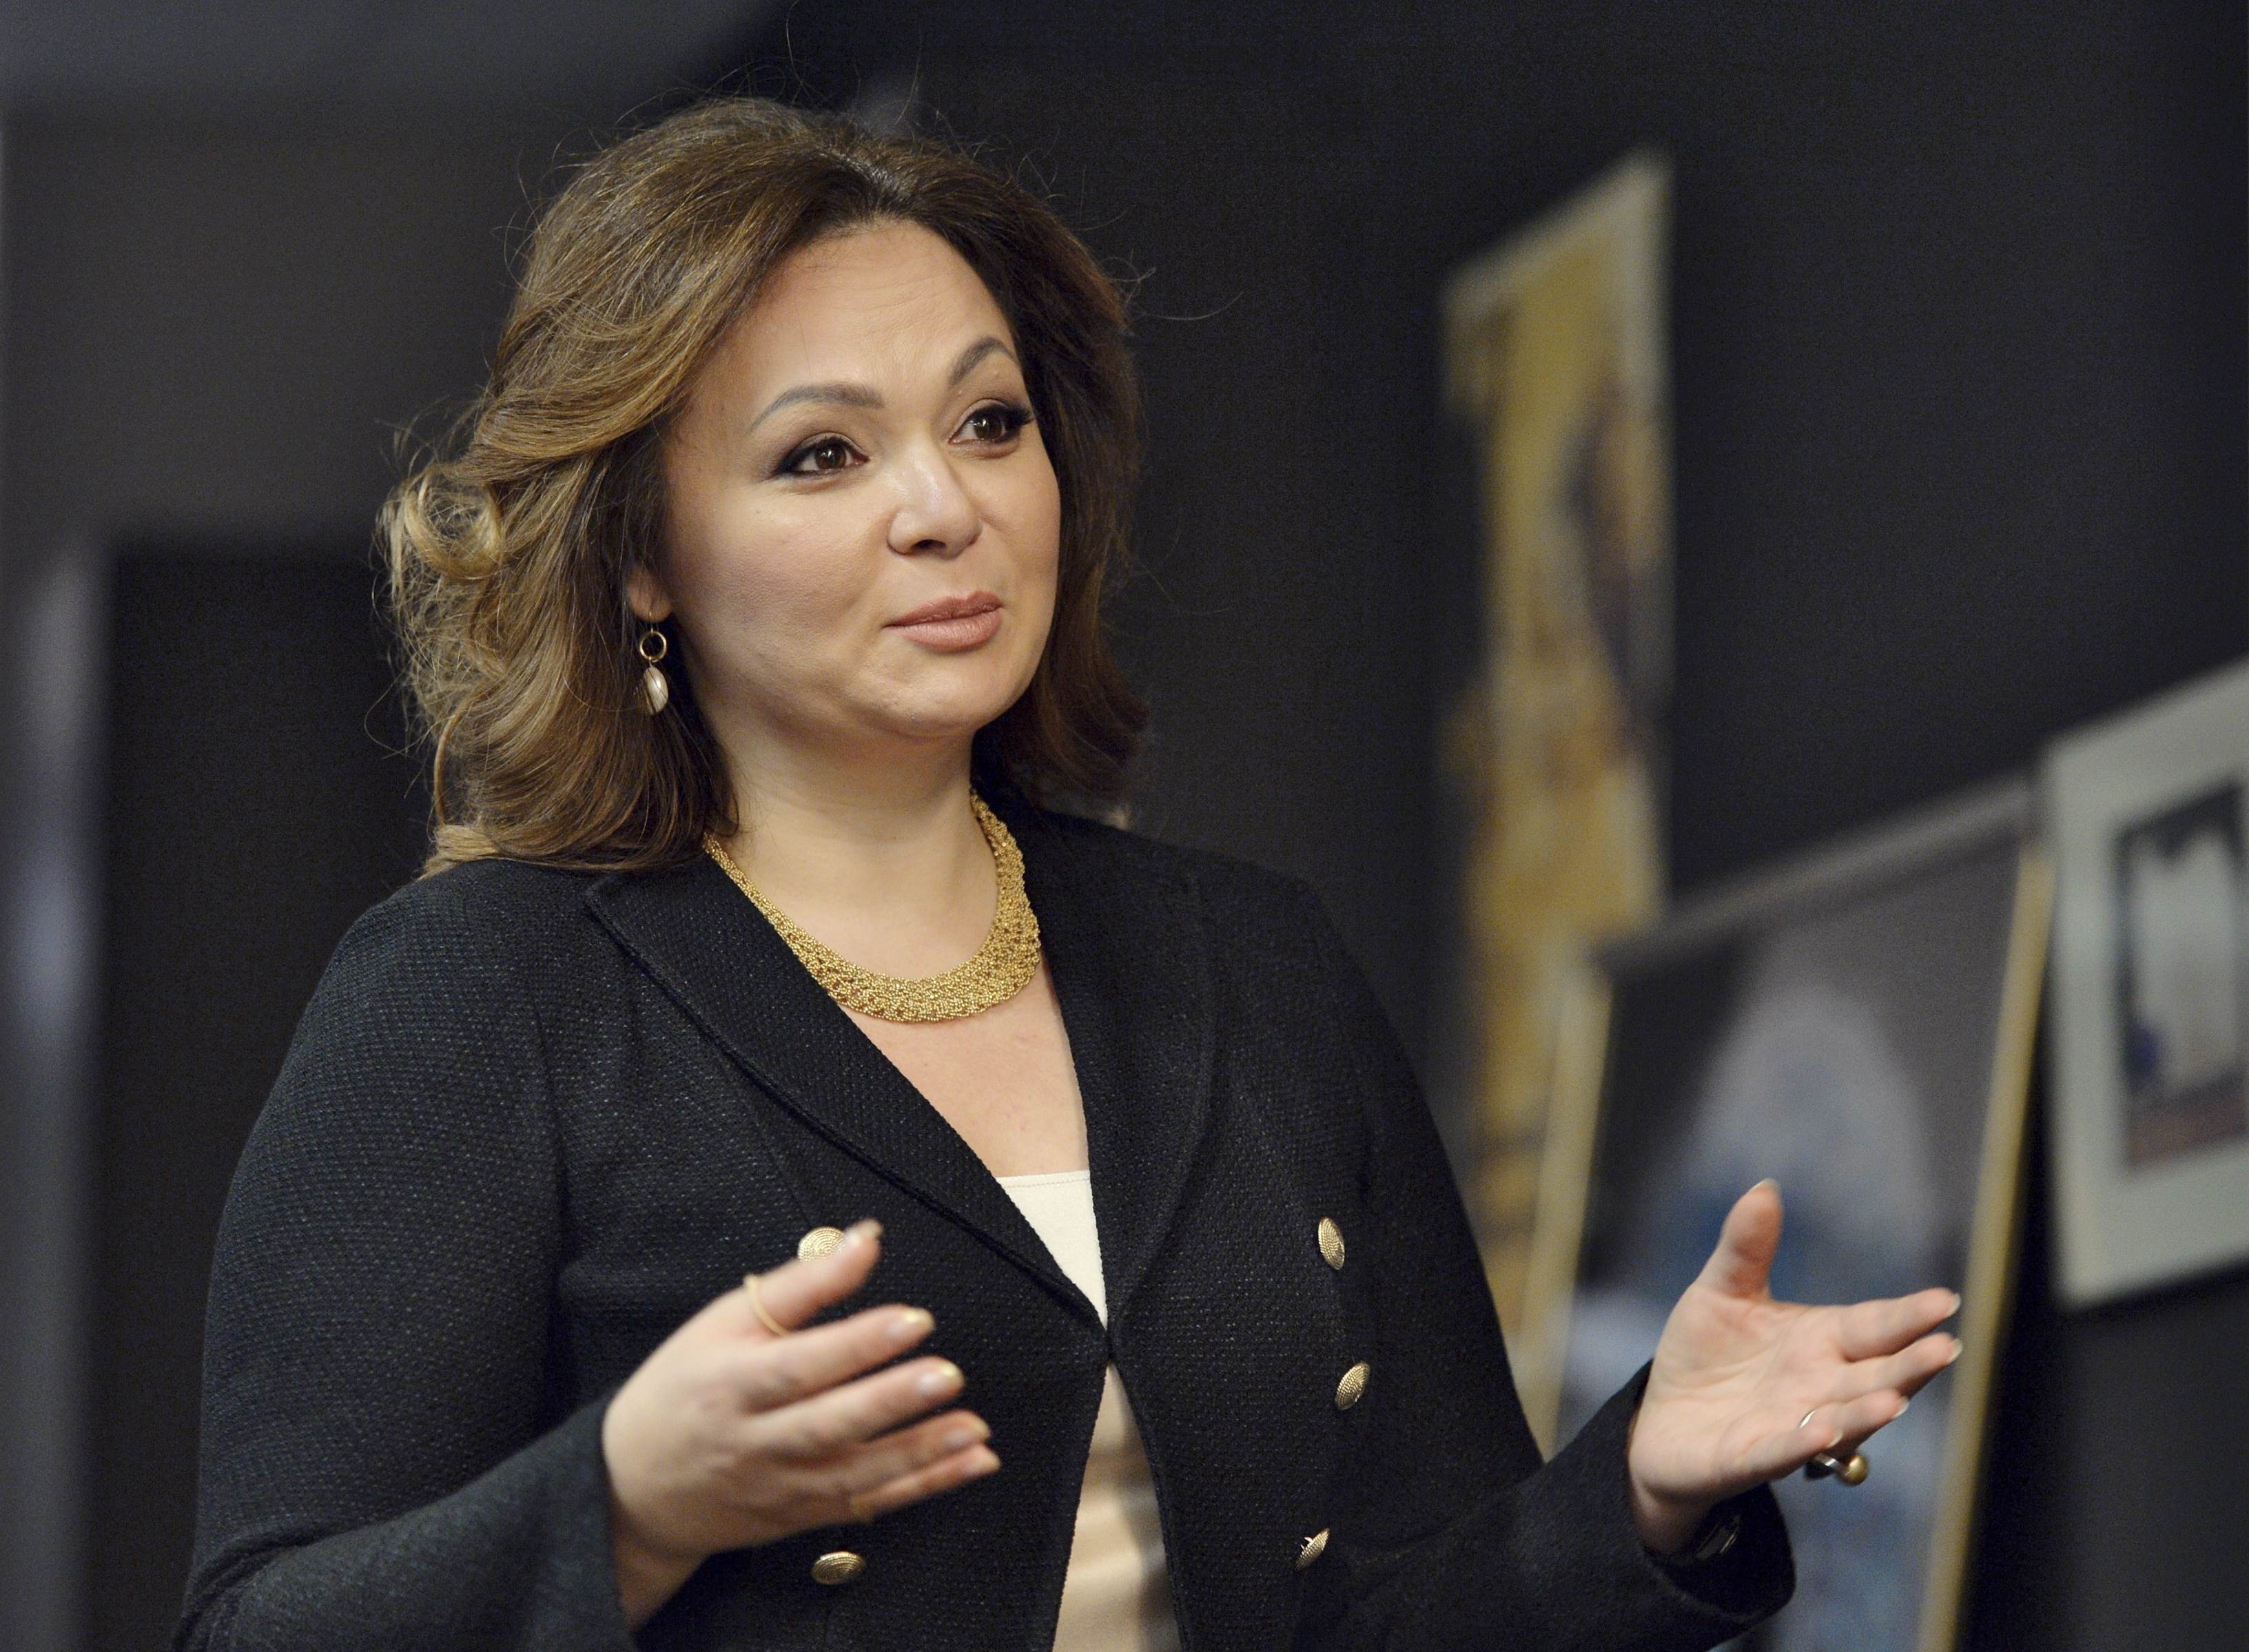 Russian lawyer Natalia Veselnitskaya speaks during an interview in Moscow, Russia November 8, 2016. REUTERS/Kommersant Photo/Yury Martyanov